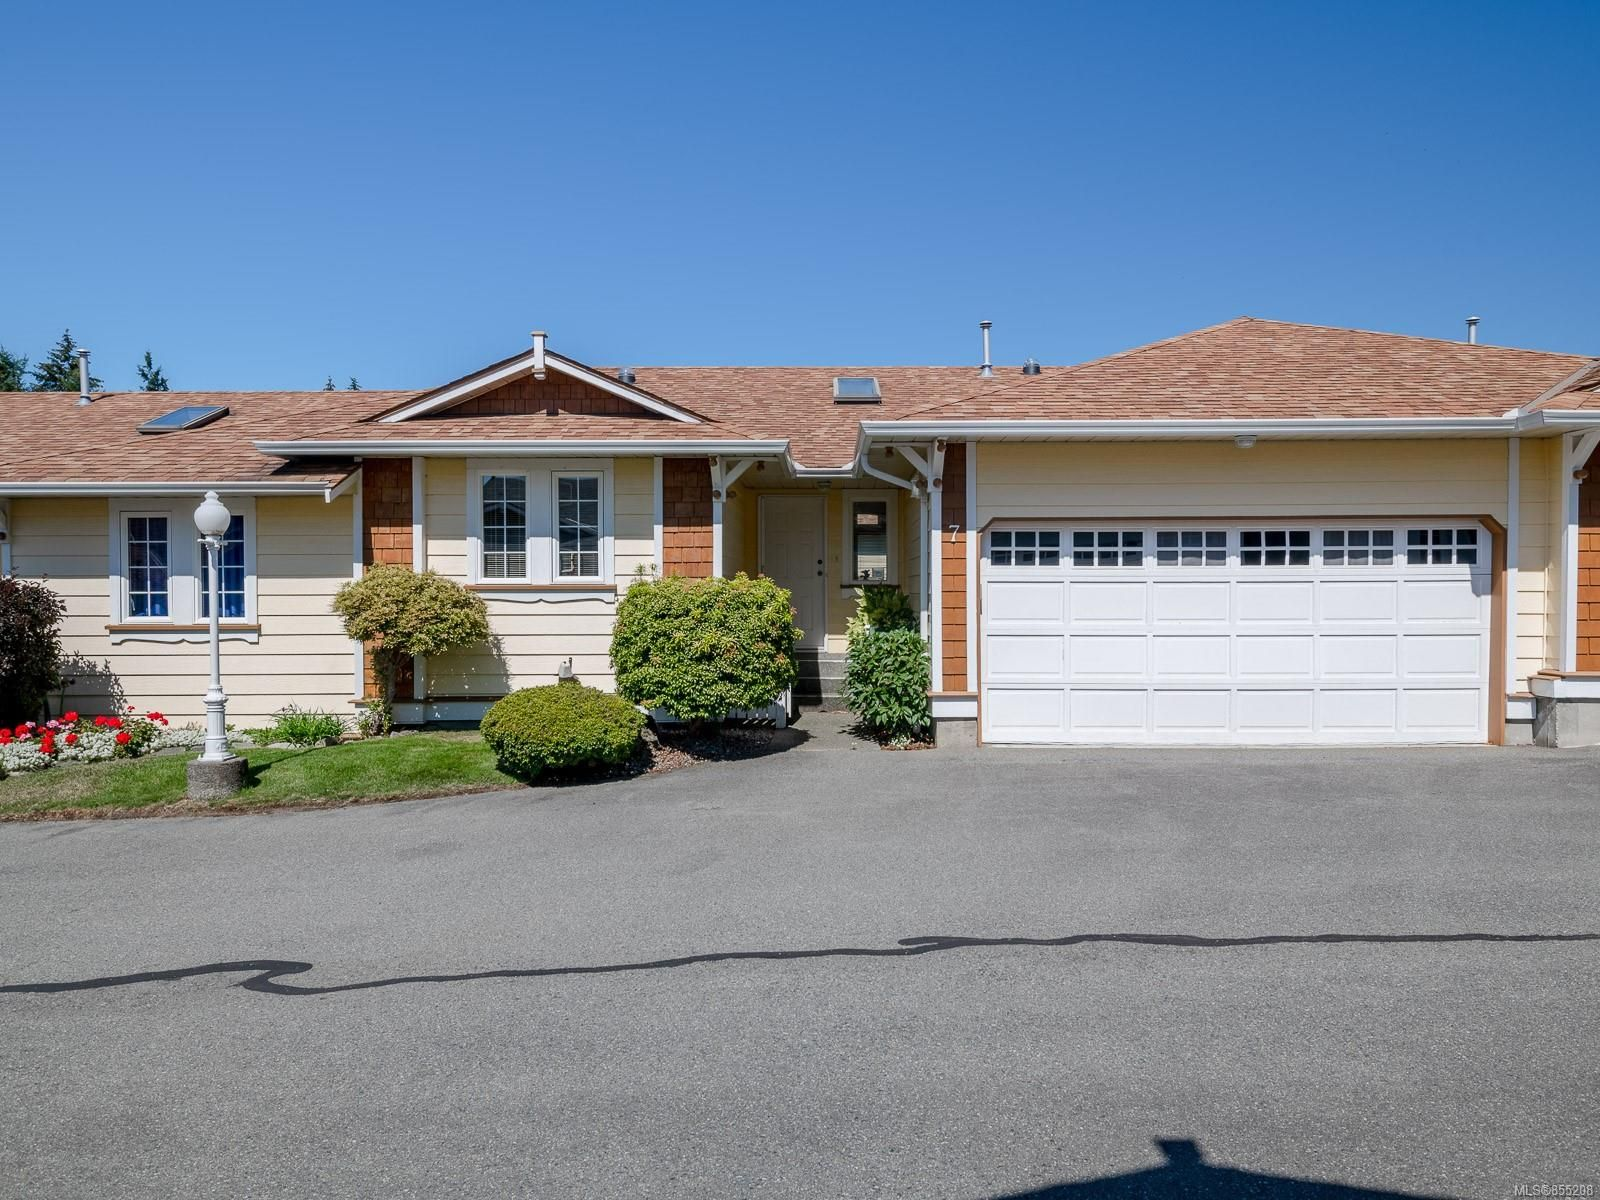 Main Photo: 7 9933 Chemainus Rd in : Du Chemainus Row/Townhouse for sale (Duncan)  : MLS®# 855208